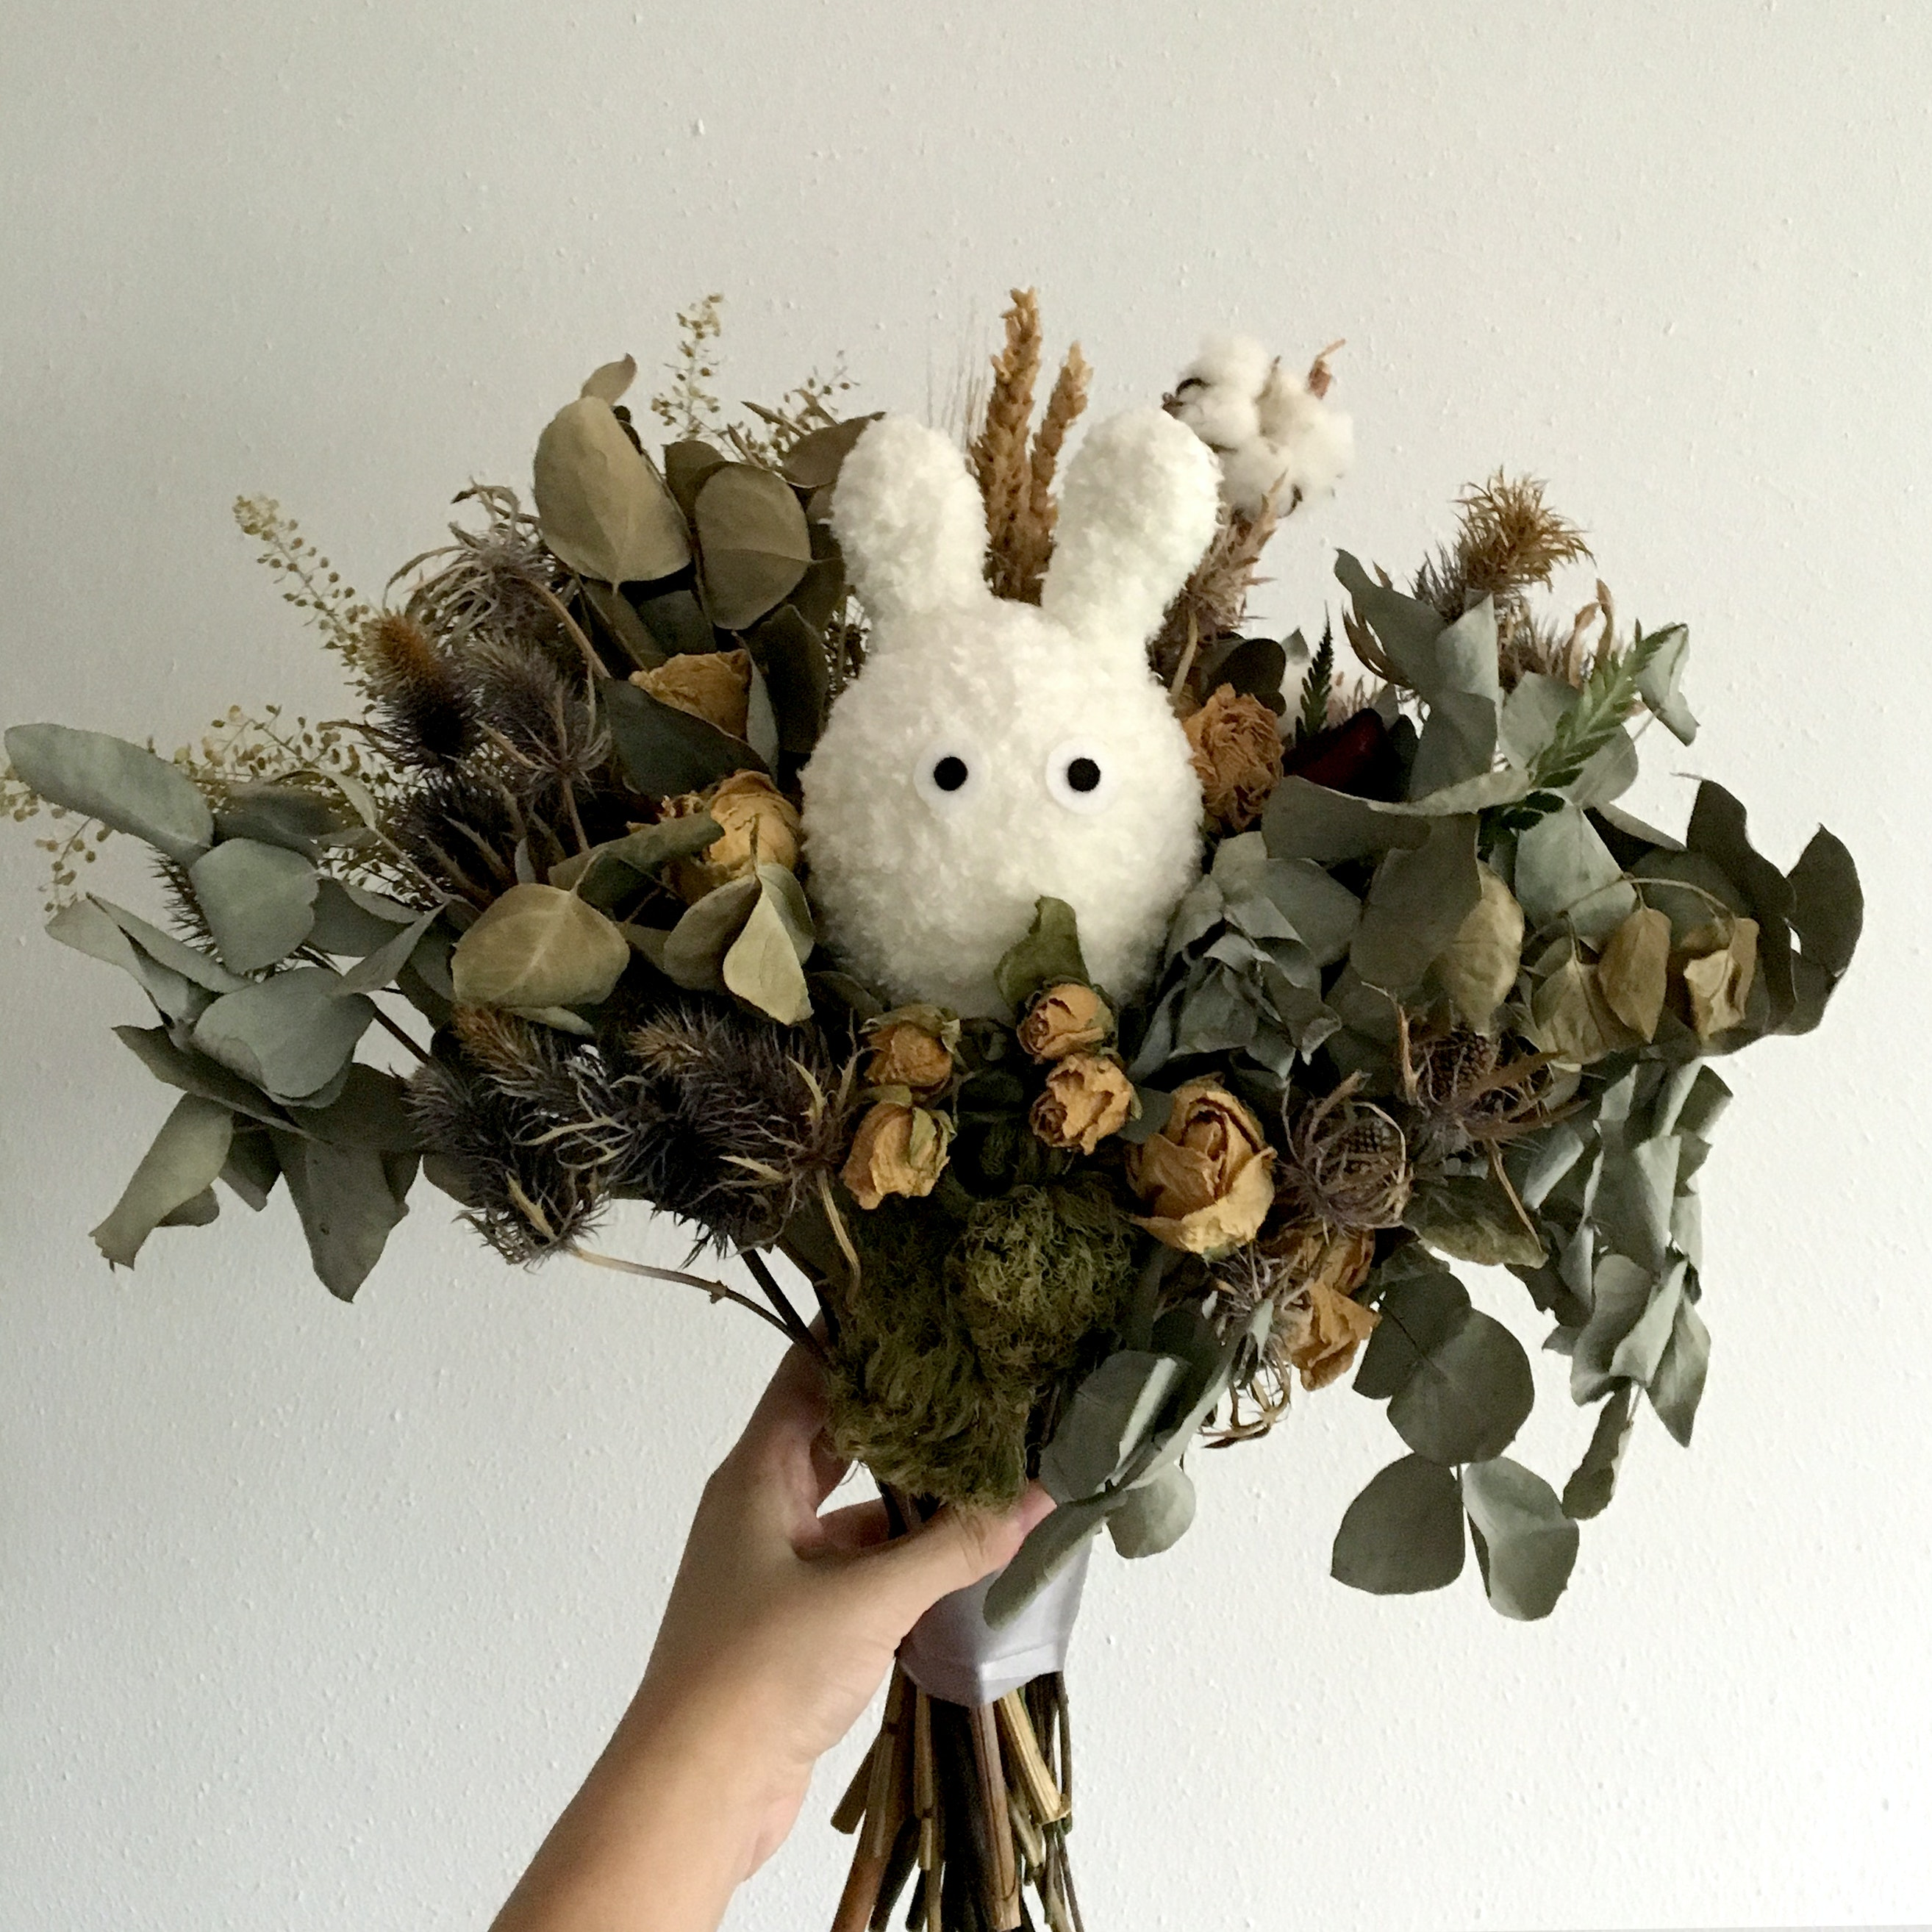 Dried Flower Bouquet Free Stock Photo